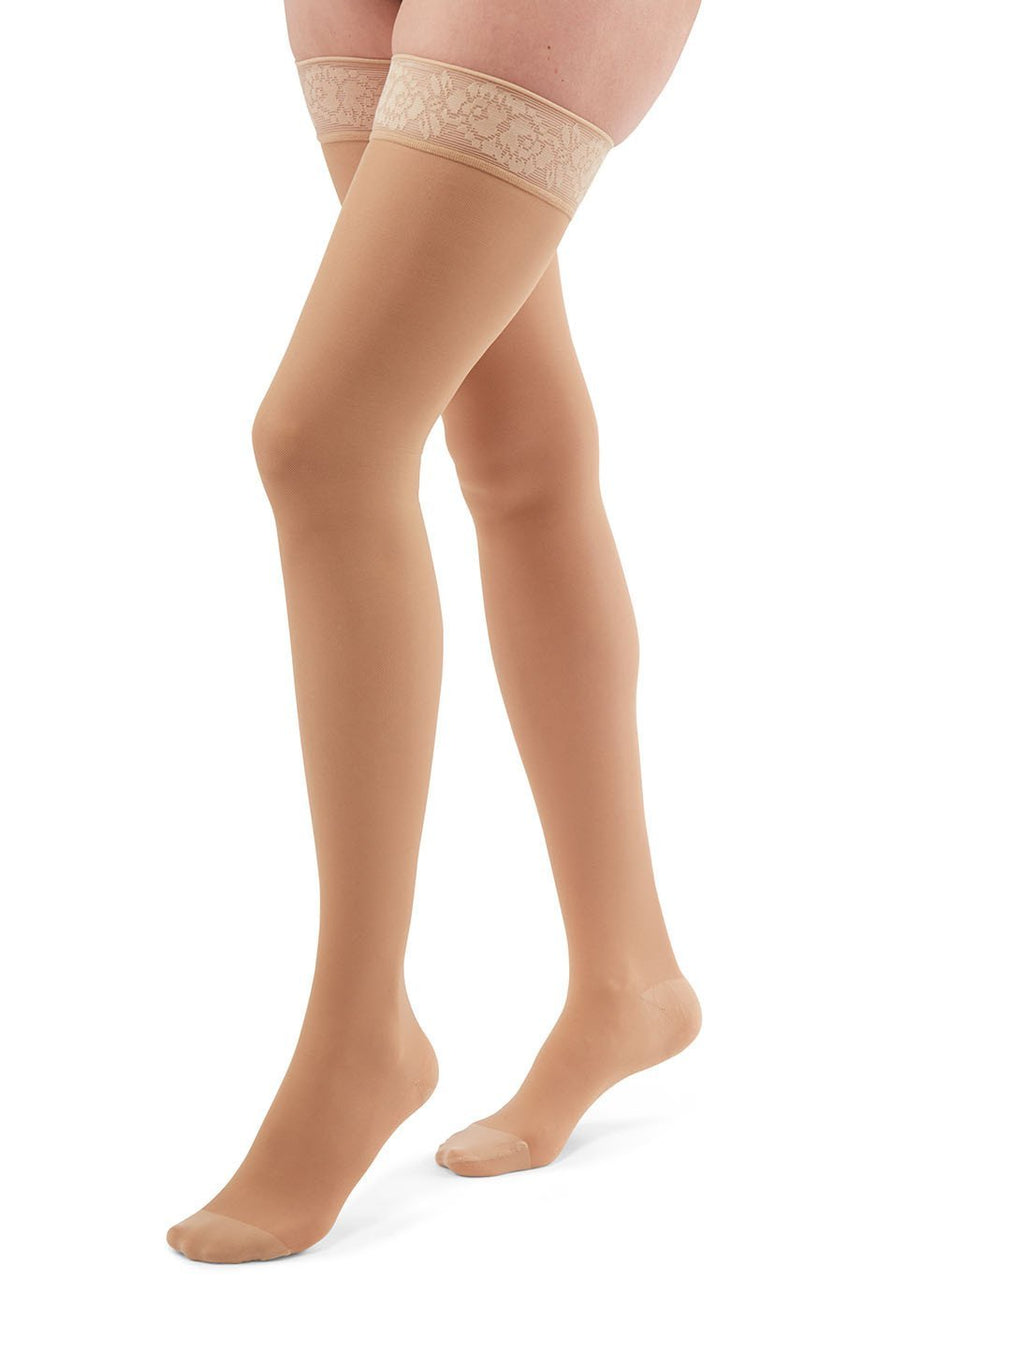 duomed transparent, 15-20 mmHg, Thigh High, Closed Toe